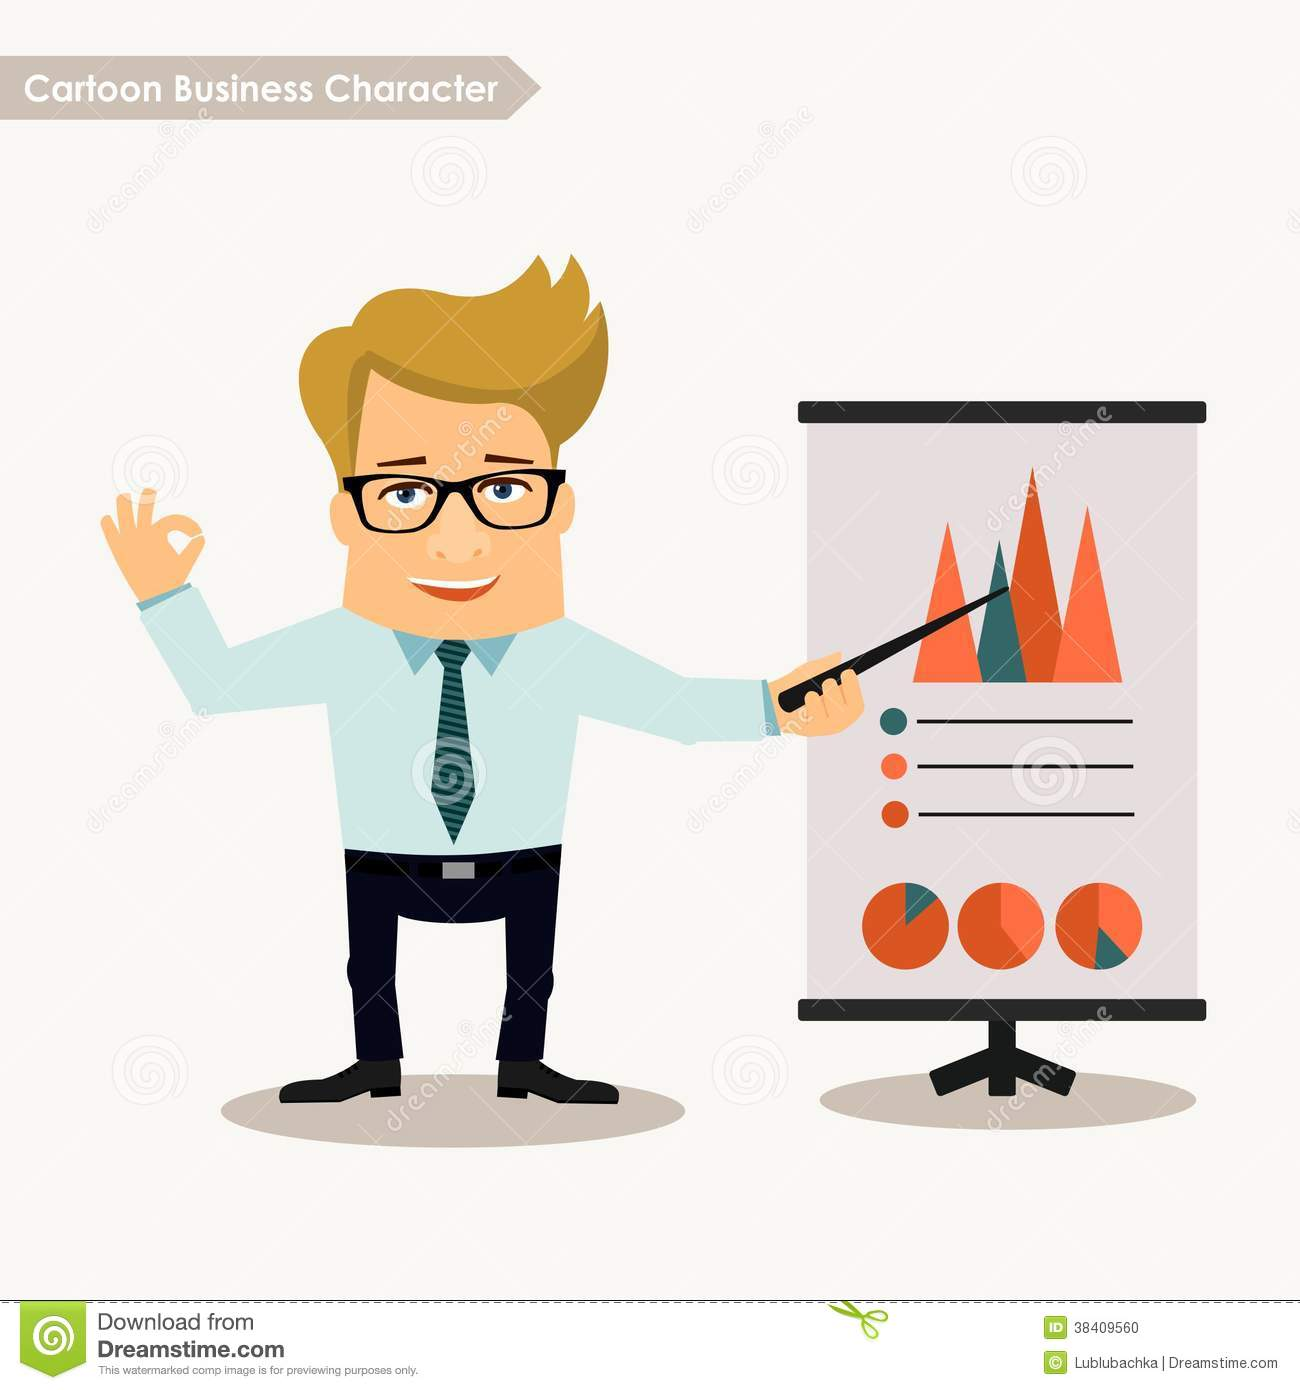 Character Design Presentation : Cartoon business character presentation concept stock